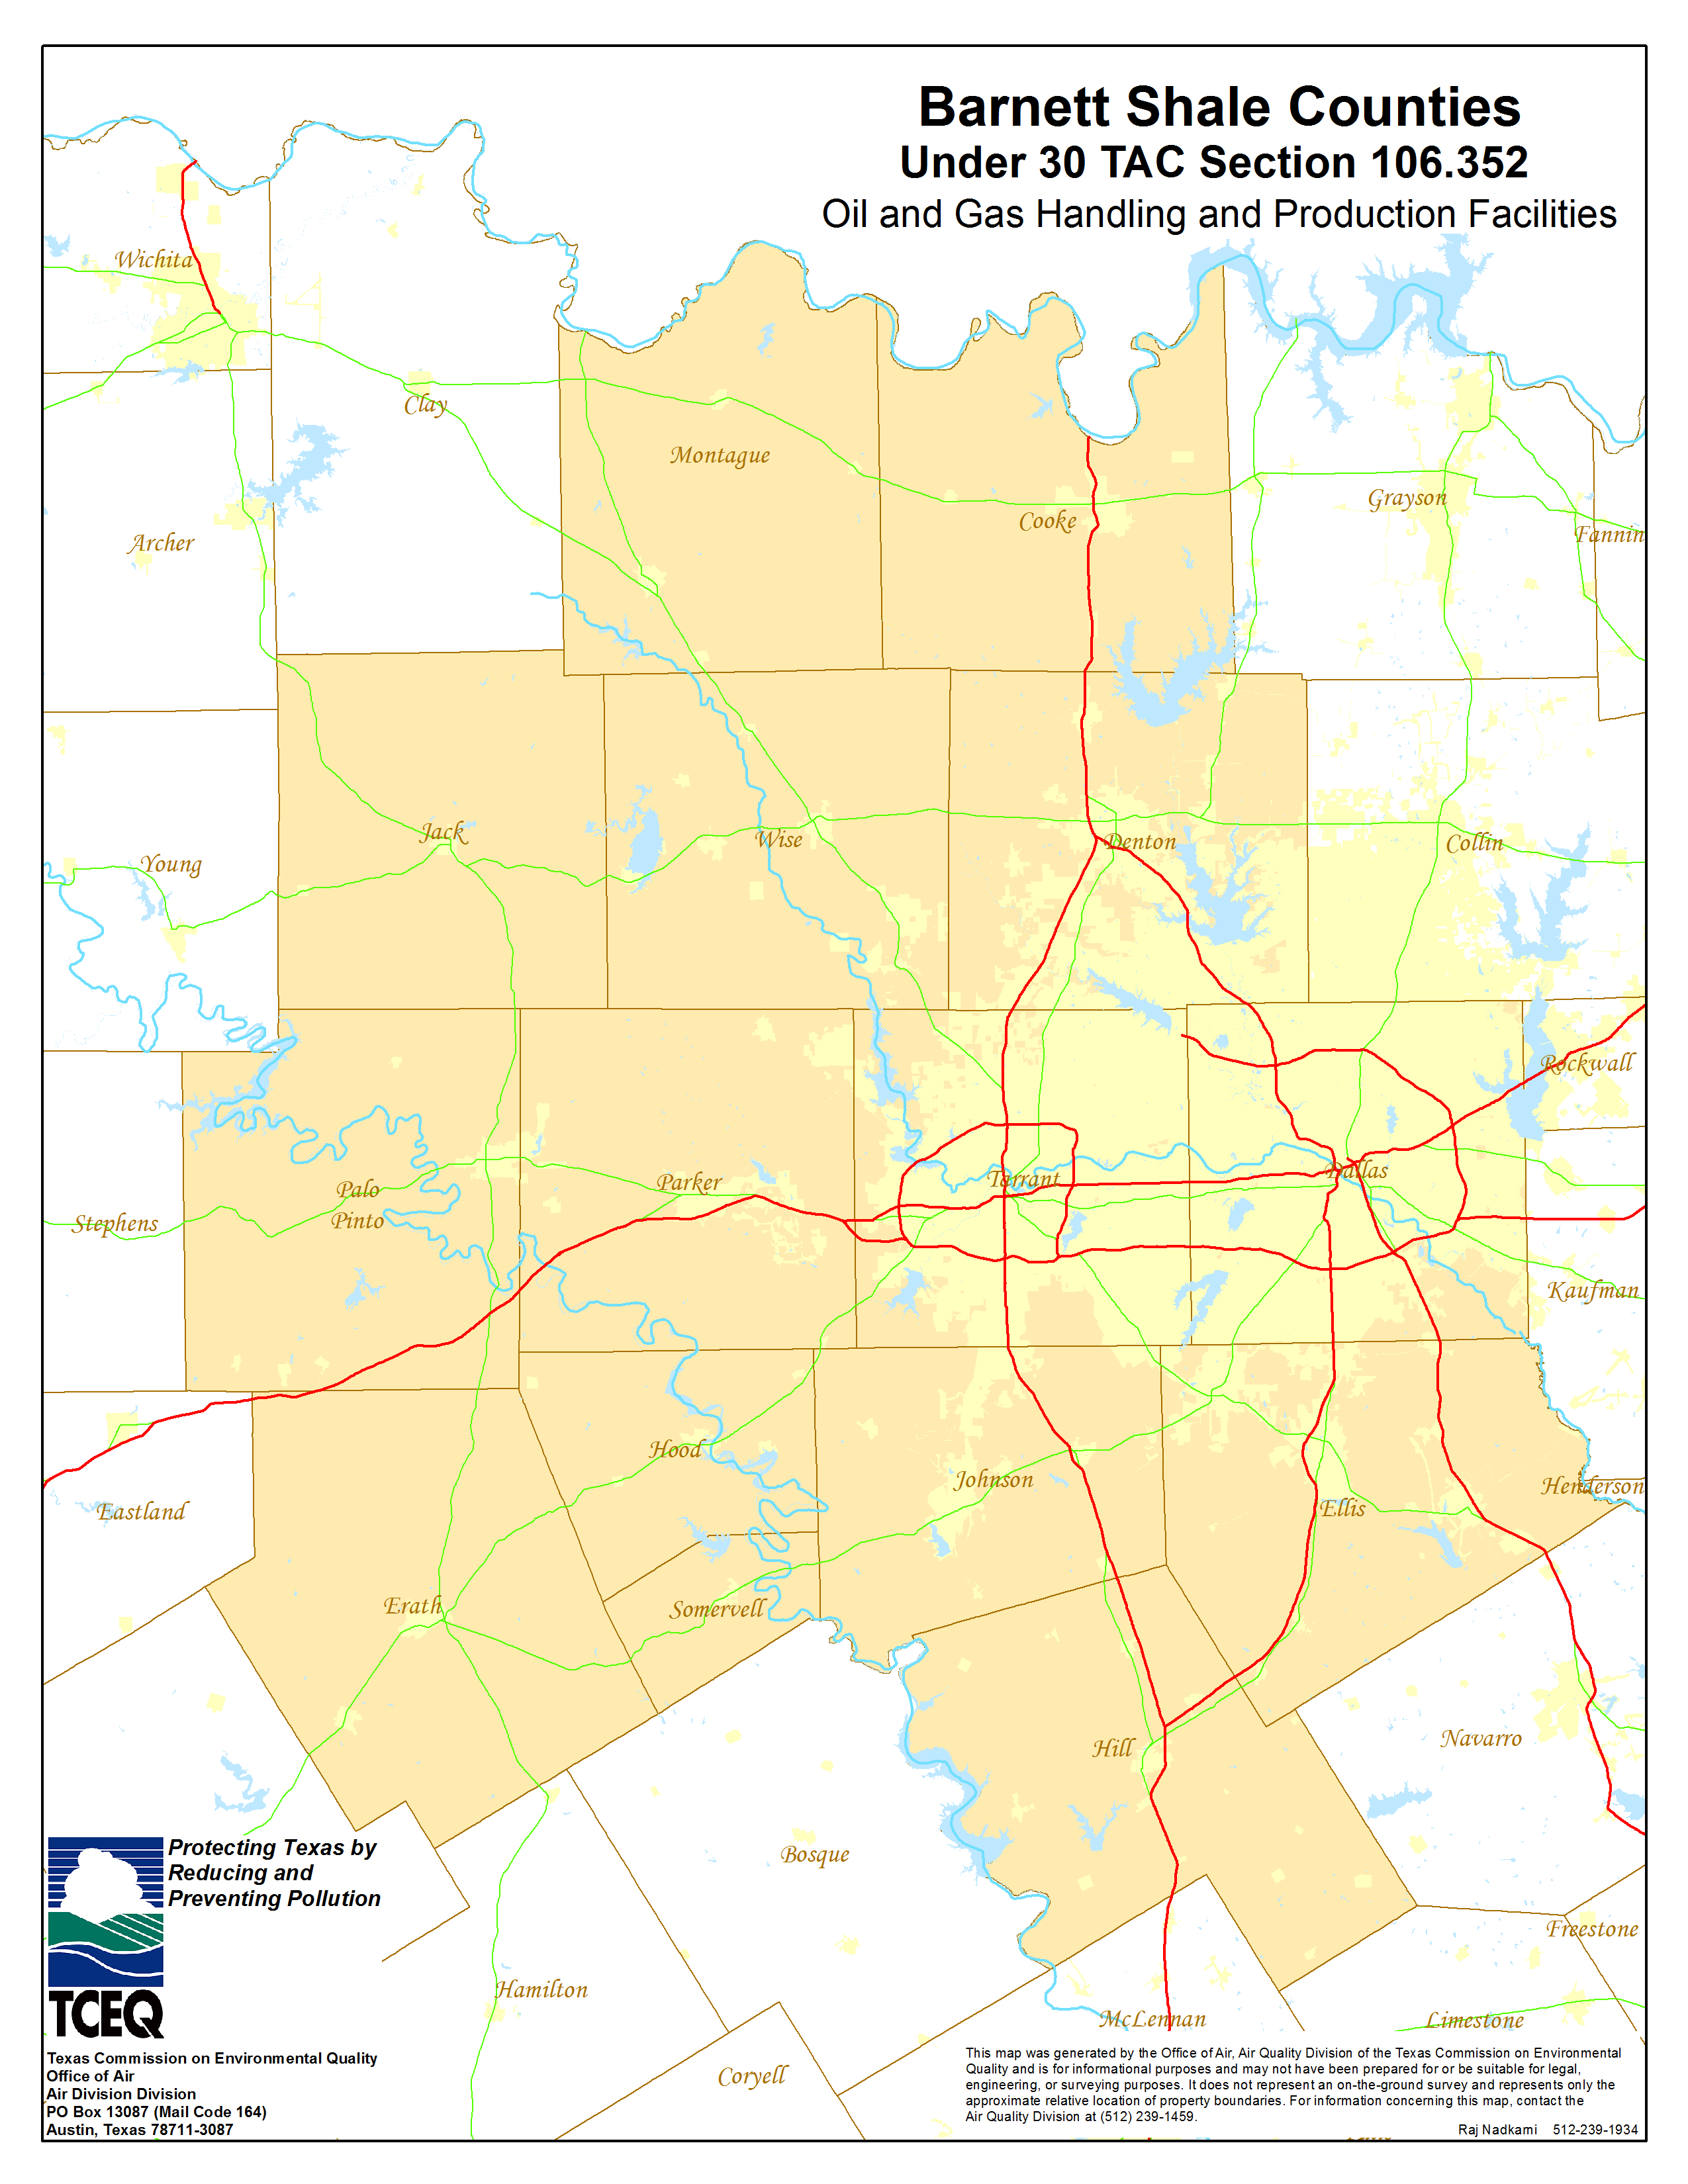 Barnett Shale Maps And Charts - Tceq - Www.tceq.texas.gov - Texas Land Survey Maps Online